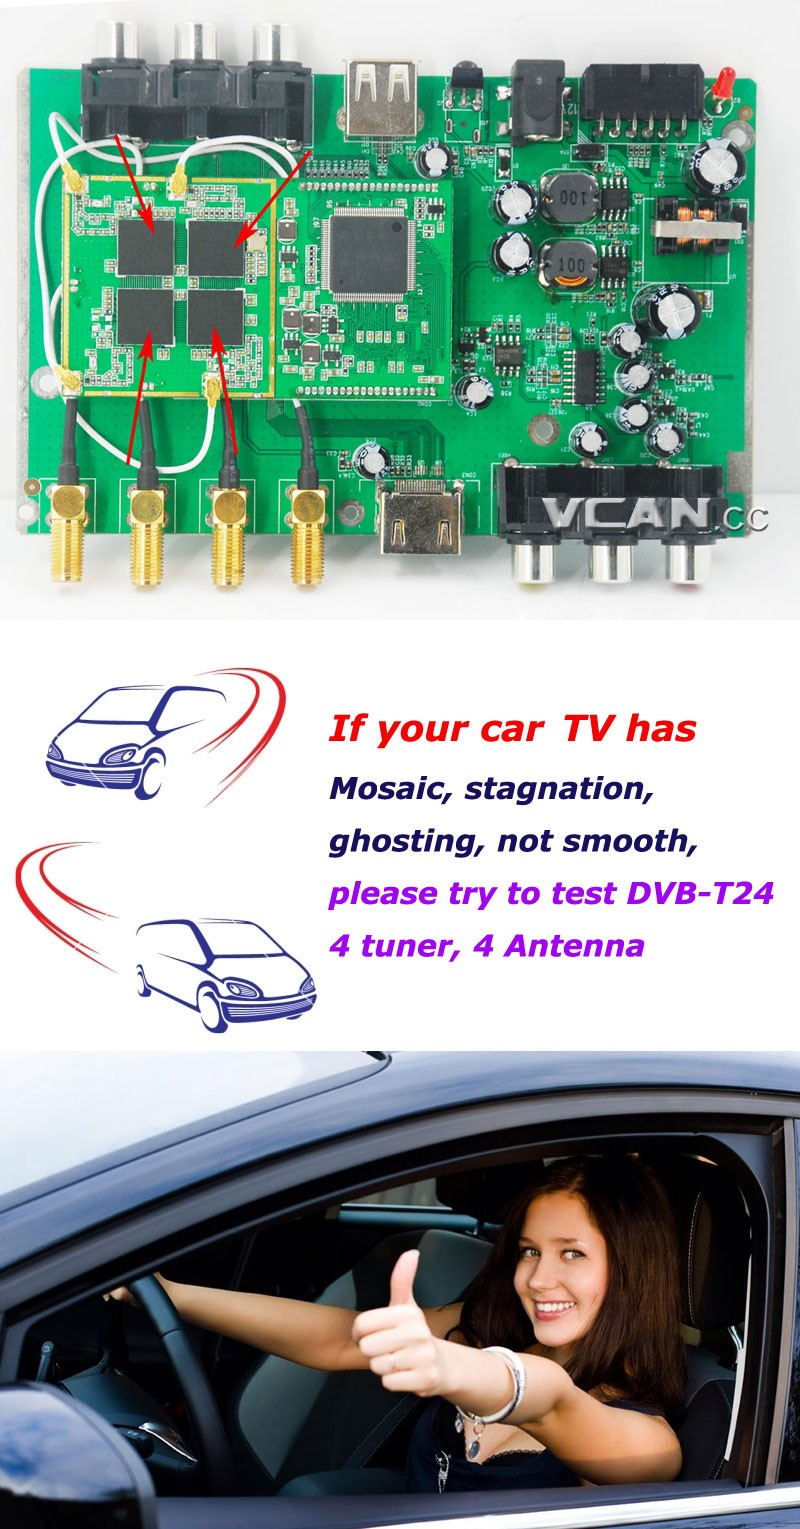 Car DVB-T2 4 Tuner 4 Antenna Digital TV Receiver for High speed auto